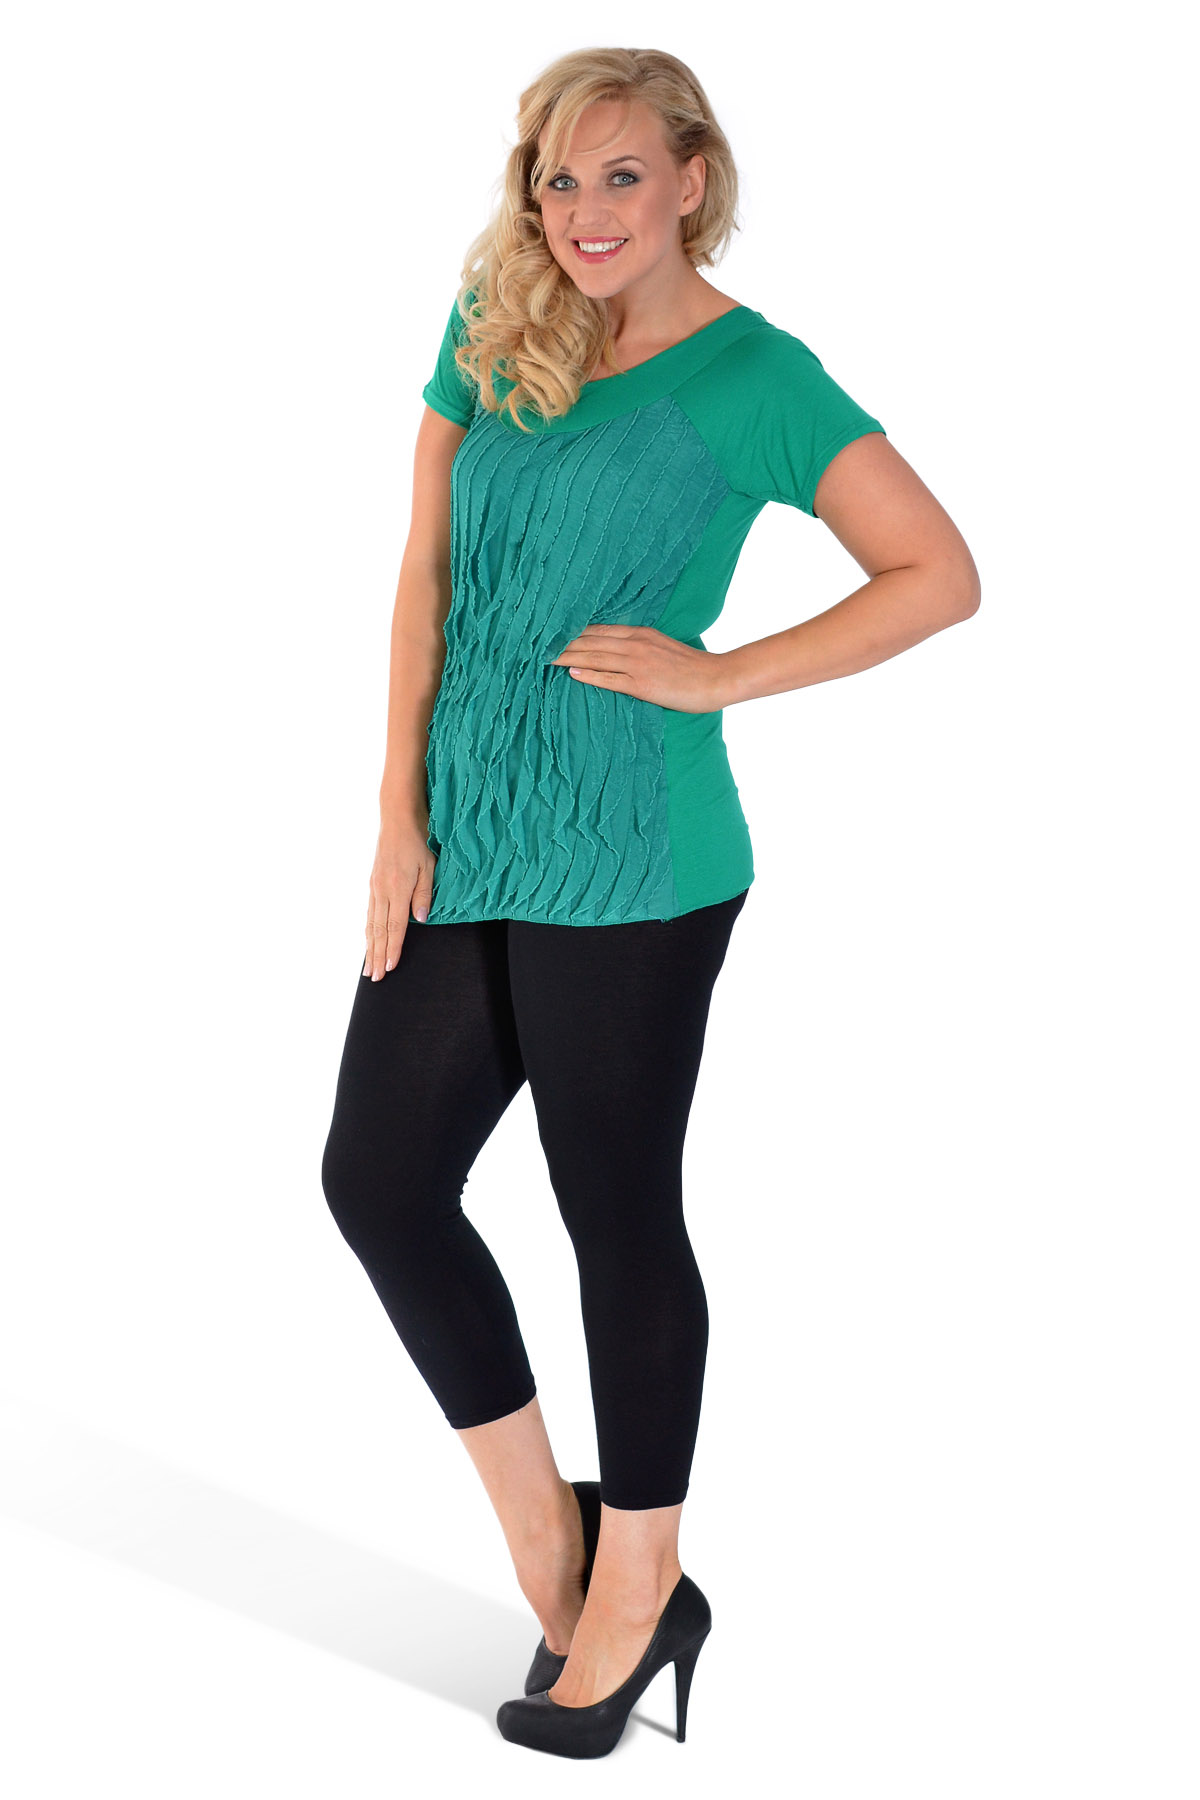 Our latest plus size top collection brings you the hottest styles at an affordable price, available in sizes 16 to Our collection includes a range plus size shirts, blouses, tunics, dressy tops and shrugs - so you can be flattering and fashionable.